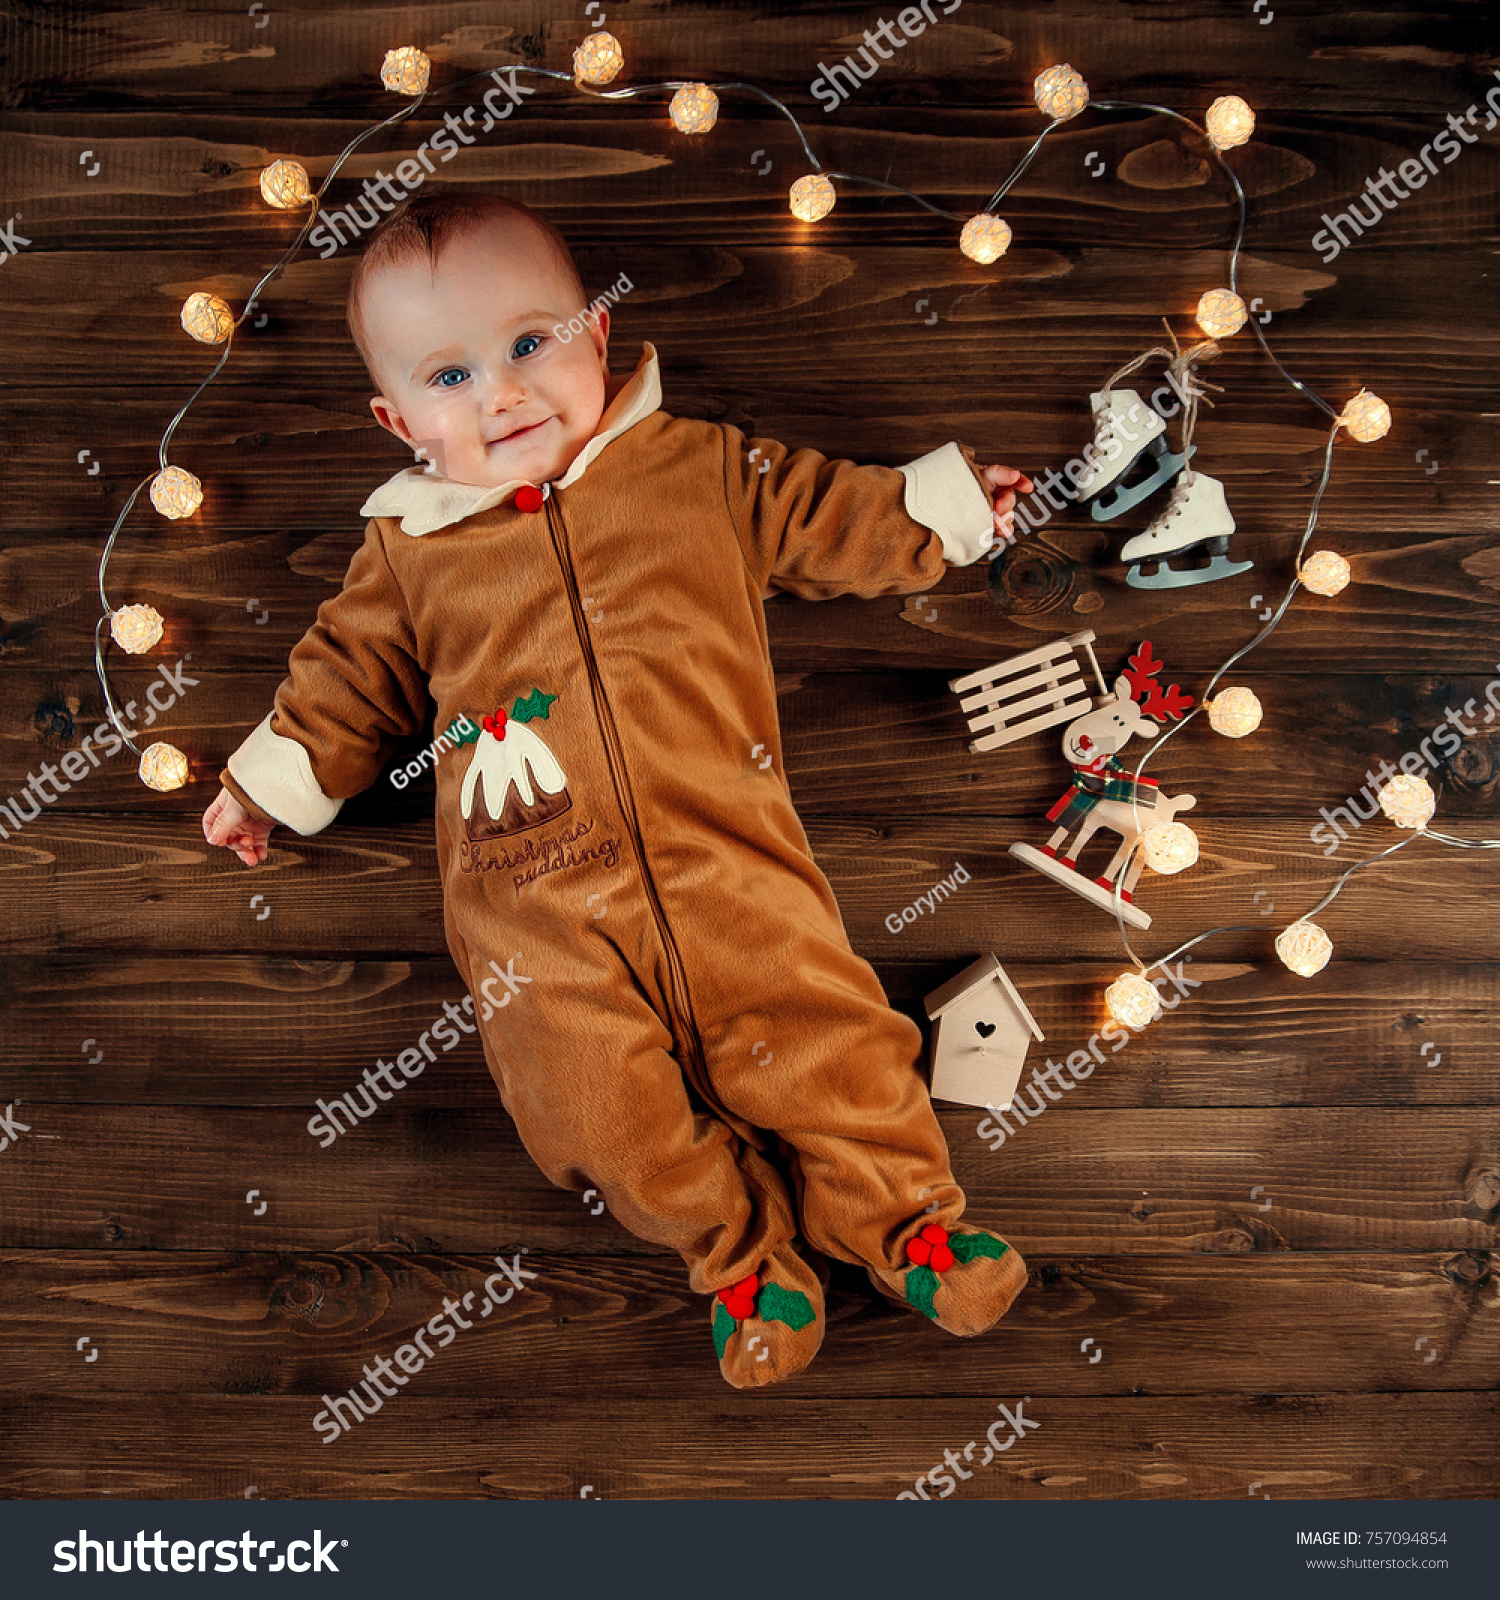 8dbf3c5cbf377 Cheerful cute baby in festive clothes is lying with Christmas lights and  decorations on a wooden